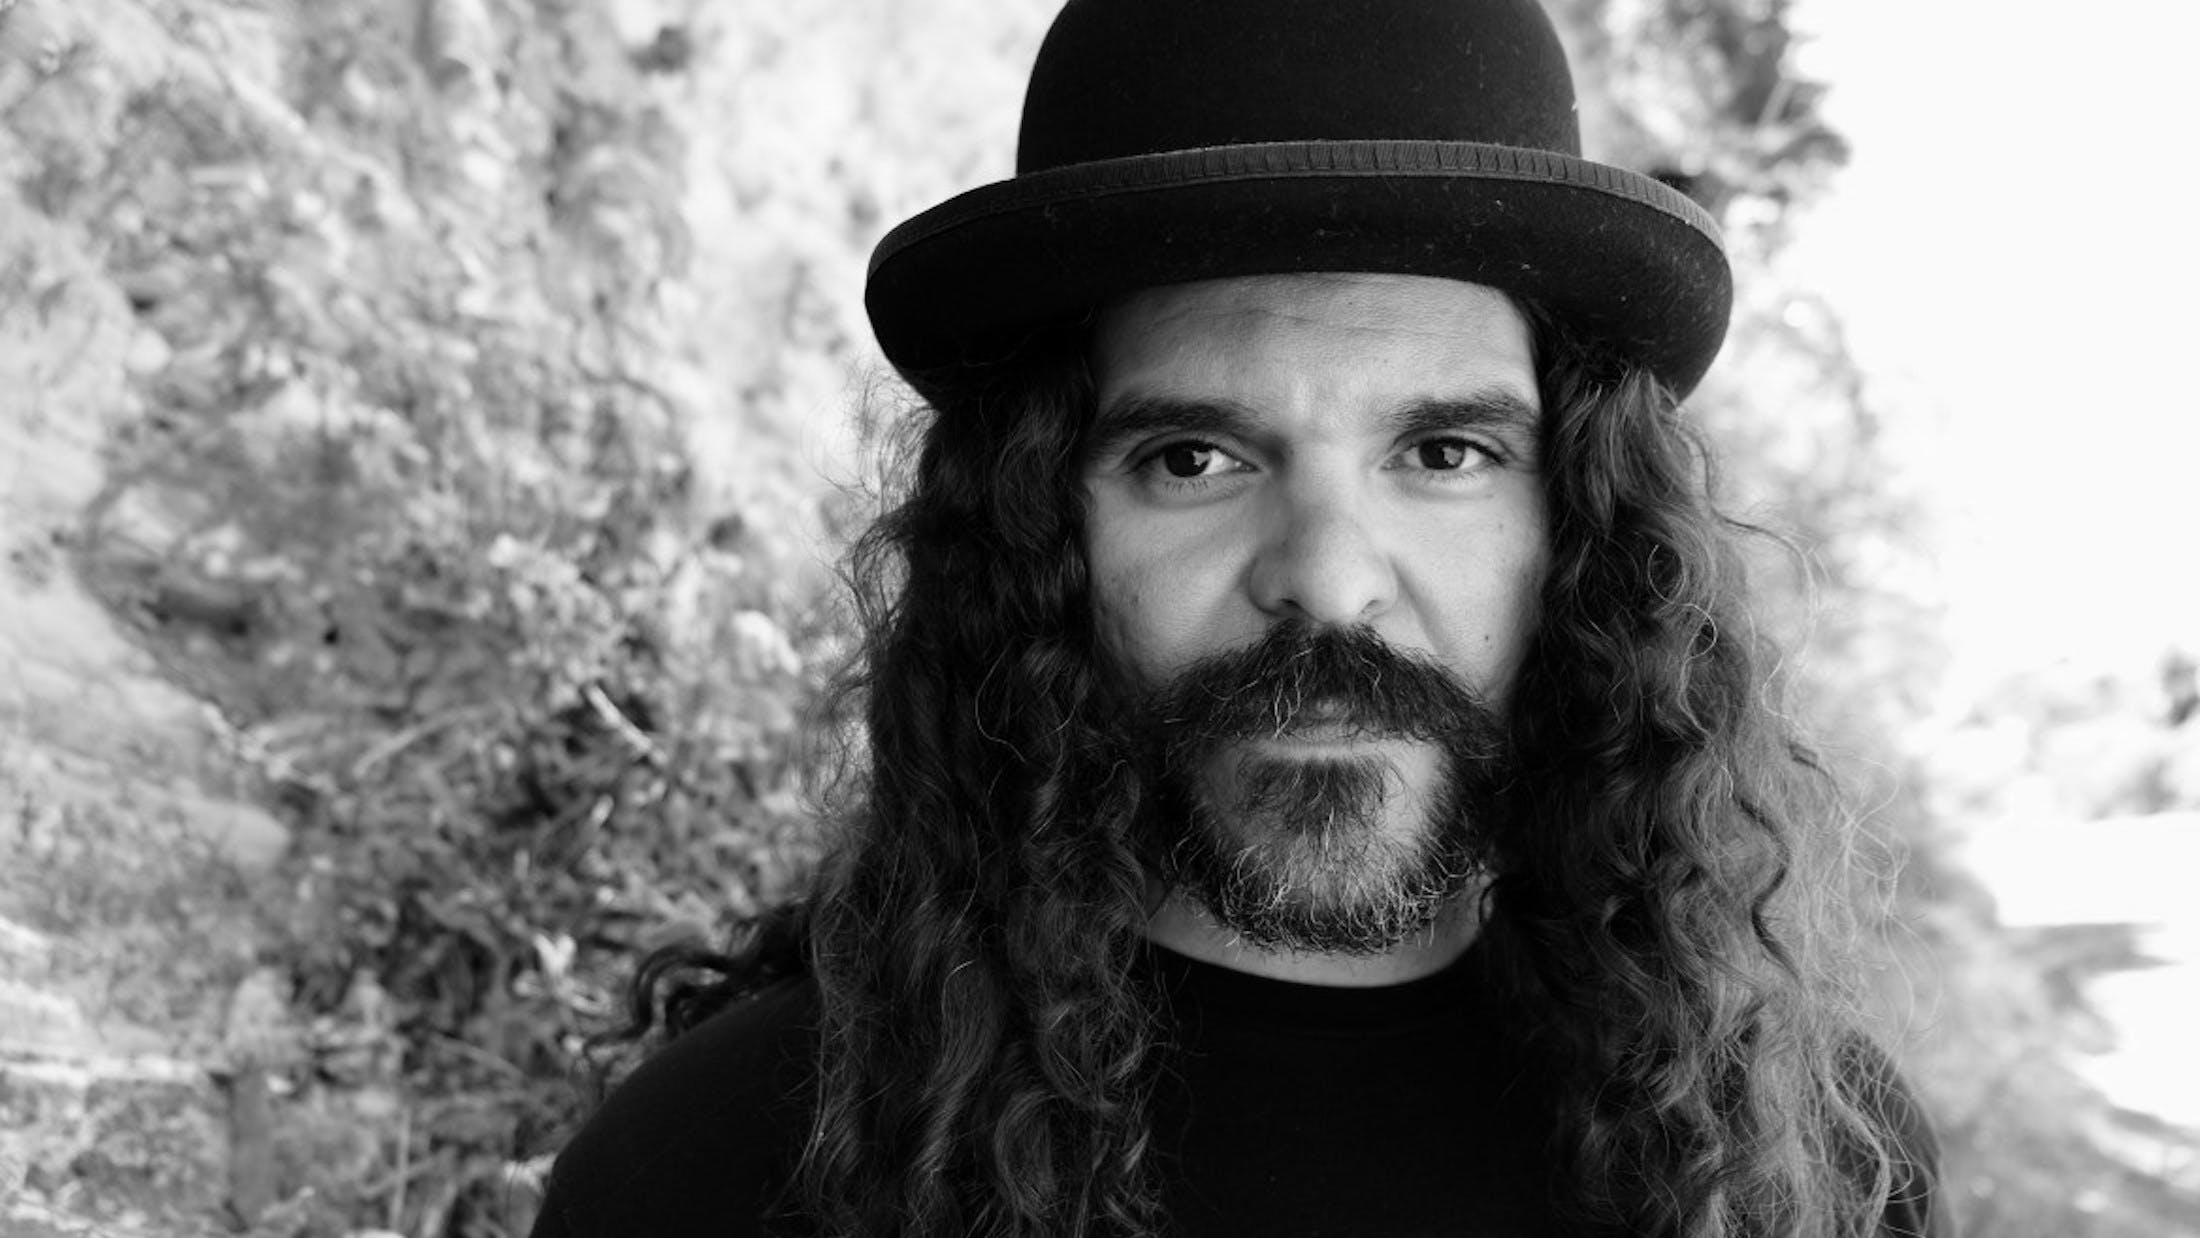 Brant Bjork Sets Up GoFundMe To Replace Instruments Following Robbery In Sweden